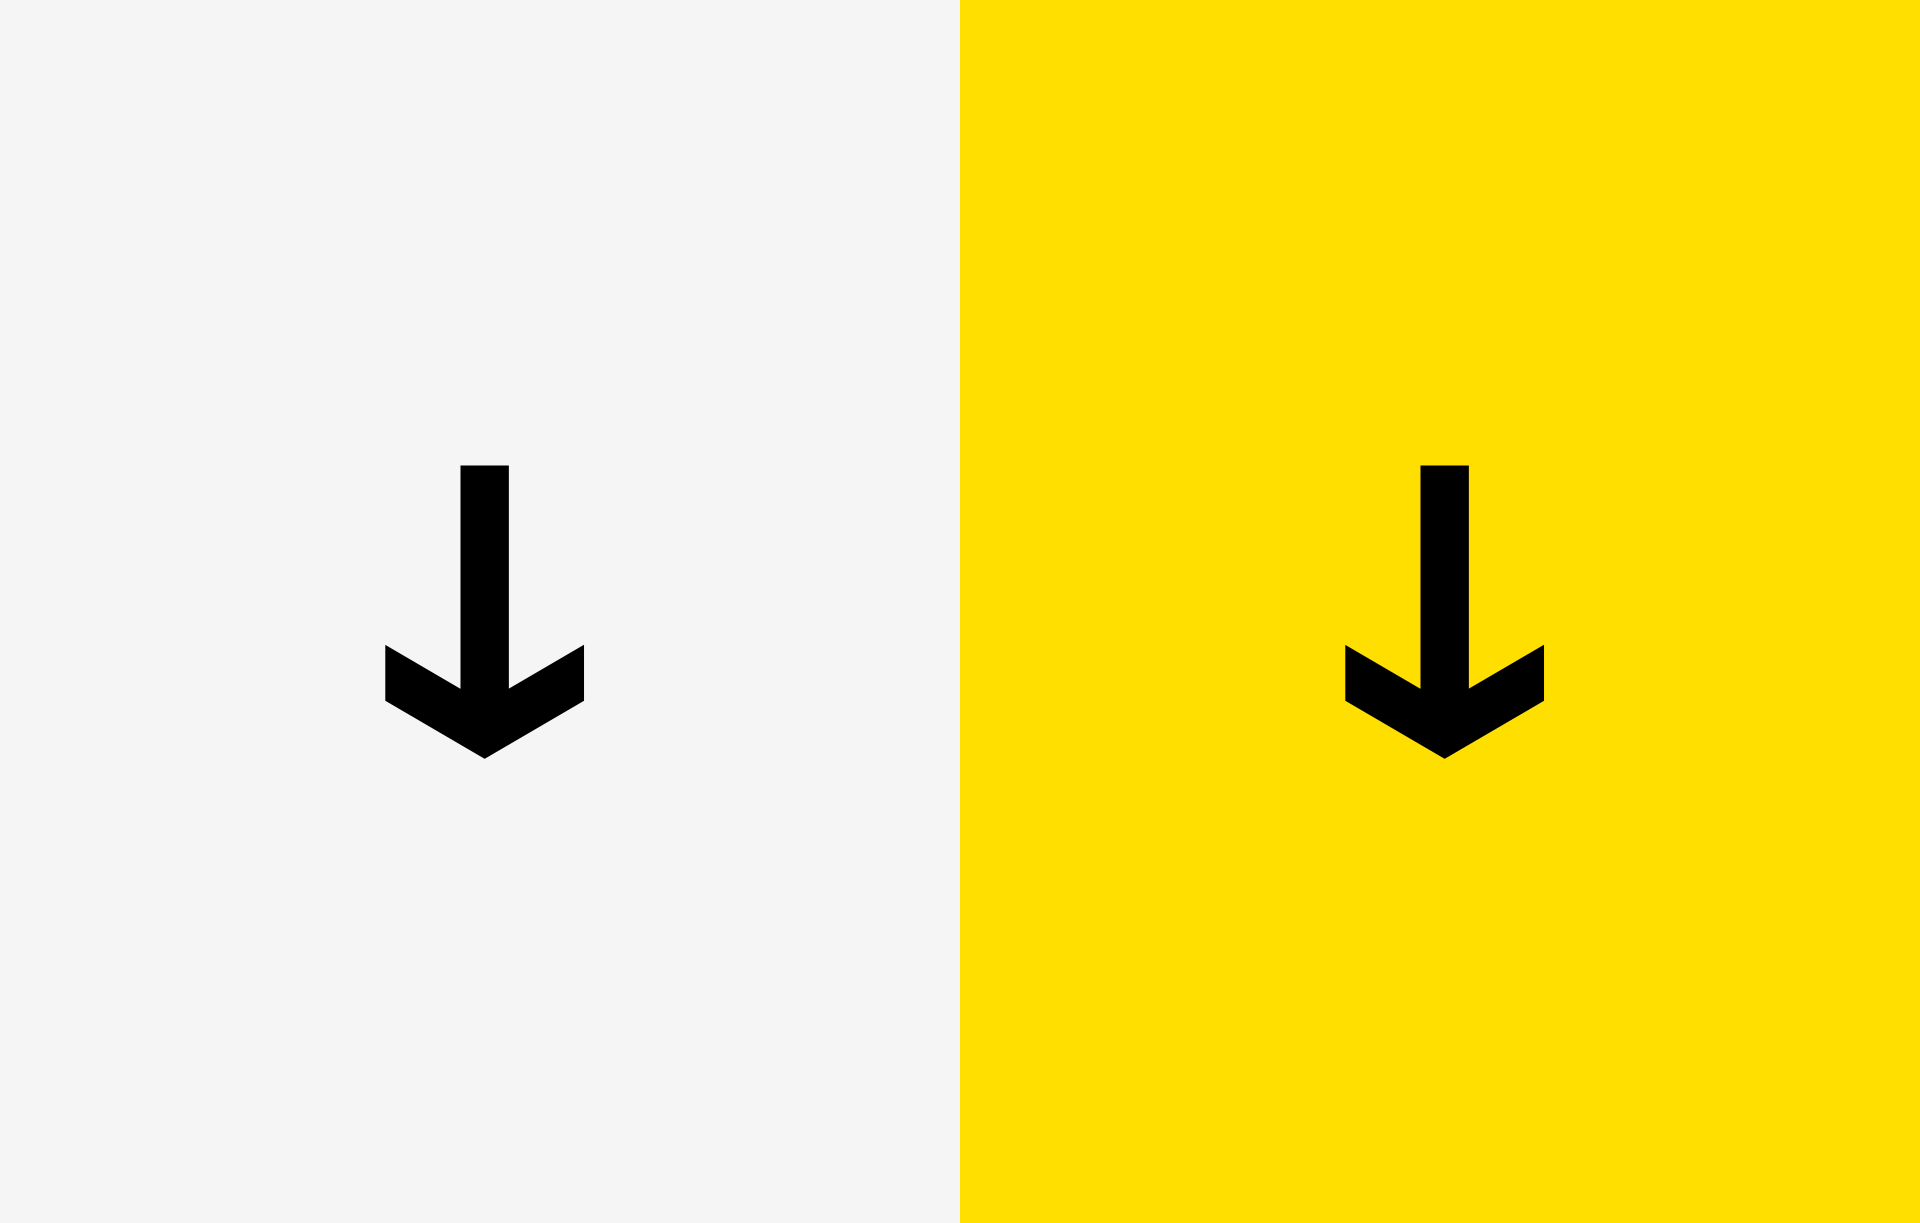 Brand design for IAR Embedded Workbench. Material from the process. Illustration showing graphical component from the logotype in black on white and yellow background.